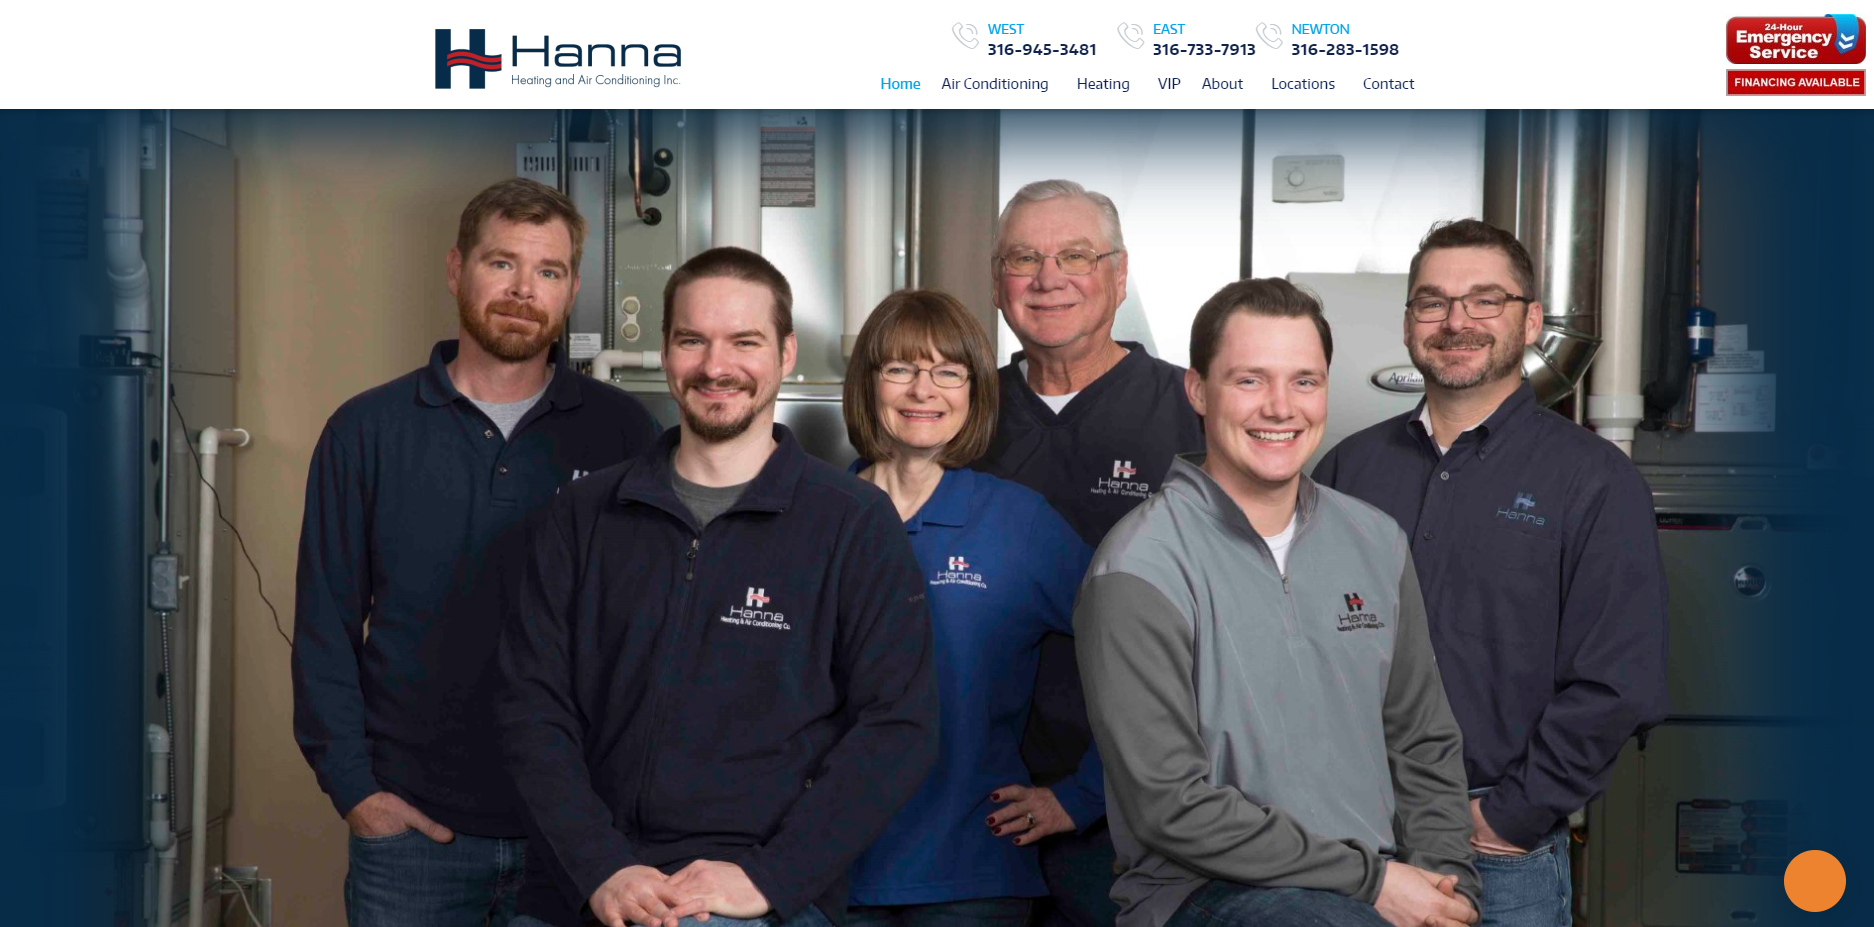 WEB Hanna After1 - Are you tired of seeing another OKC HVAC company at the top of Google?